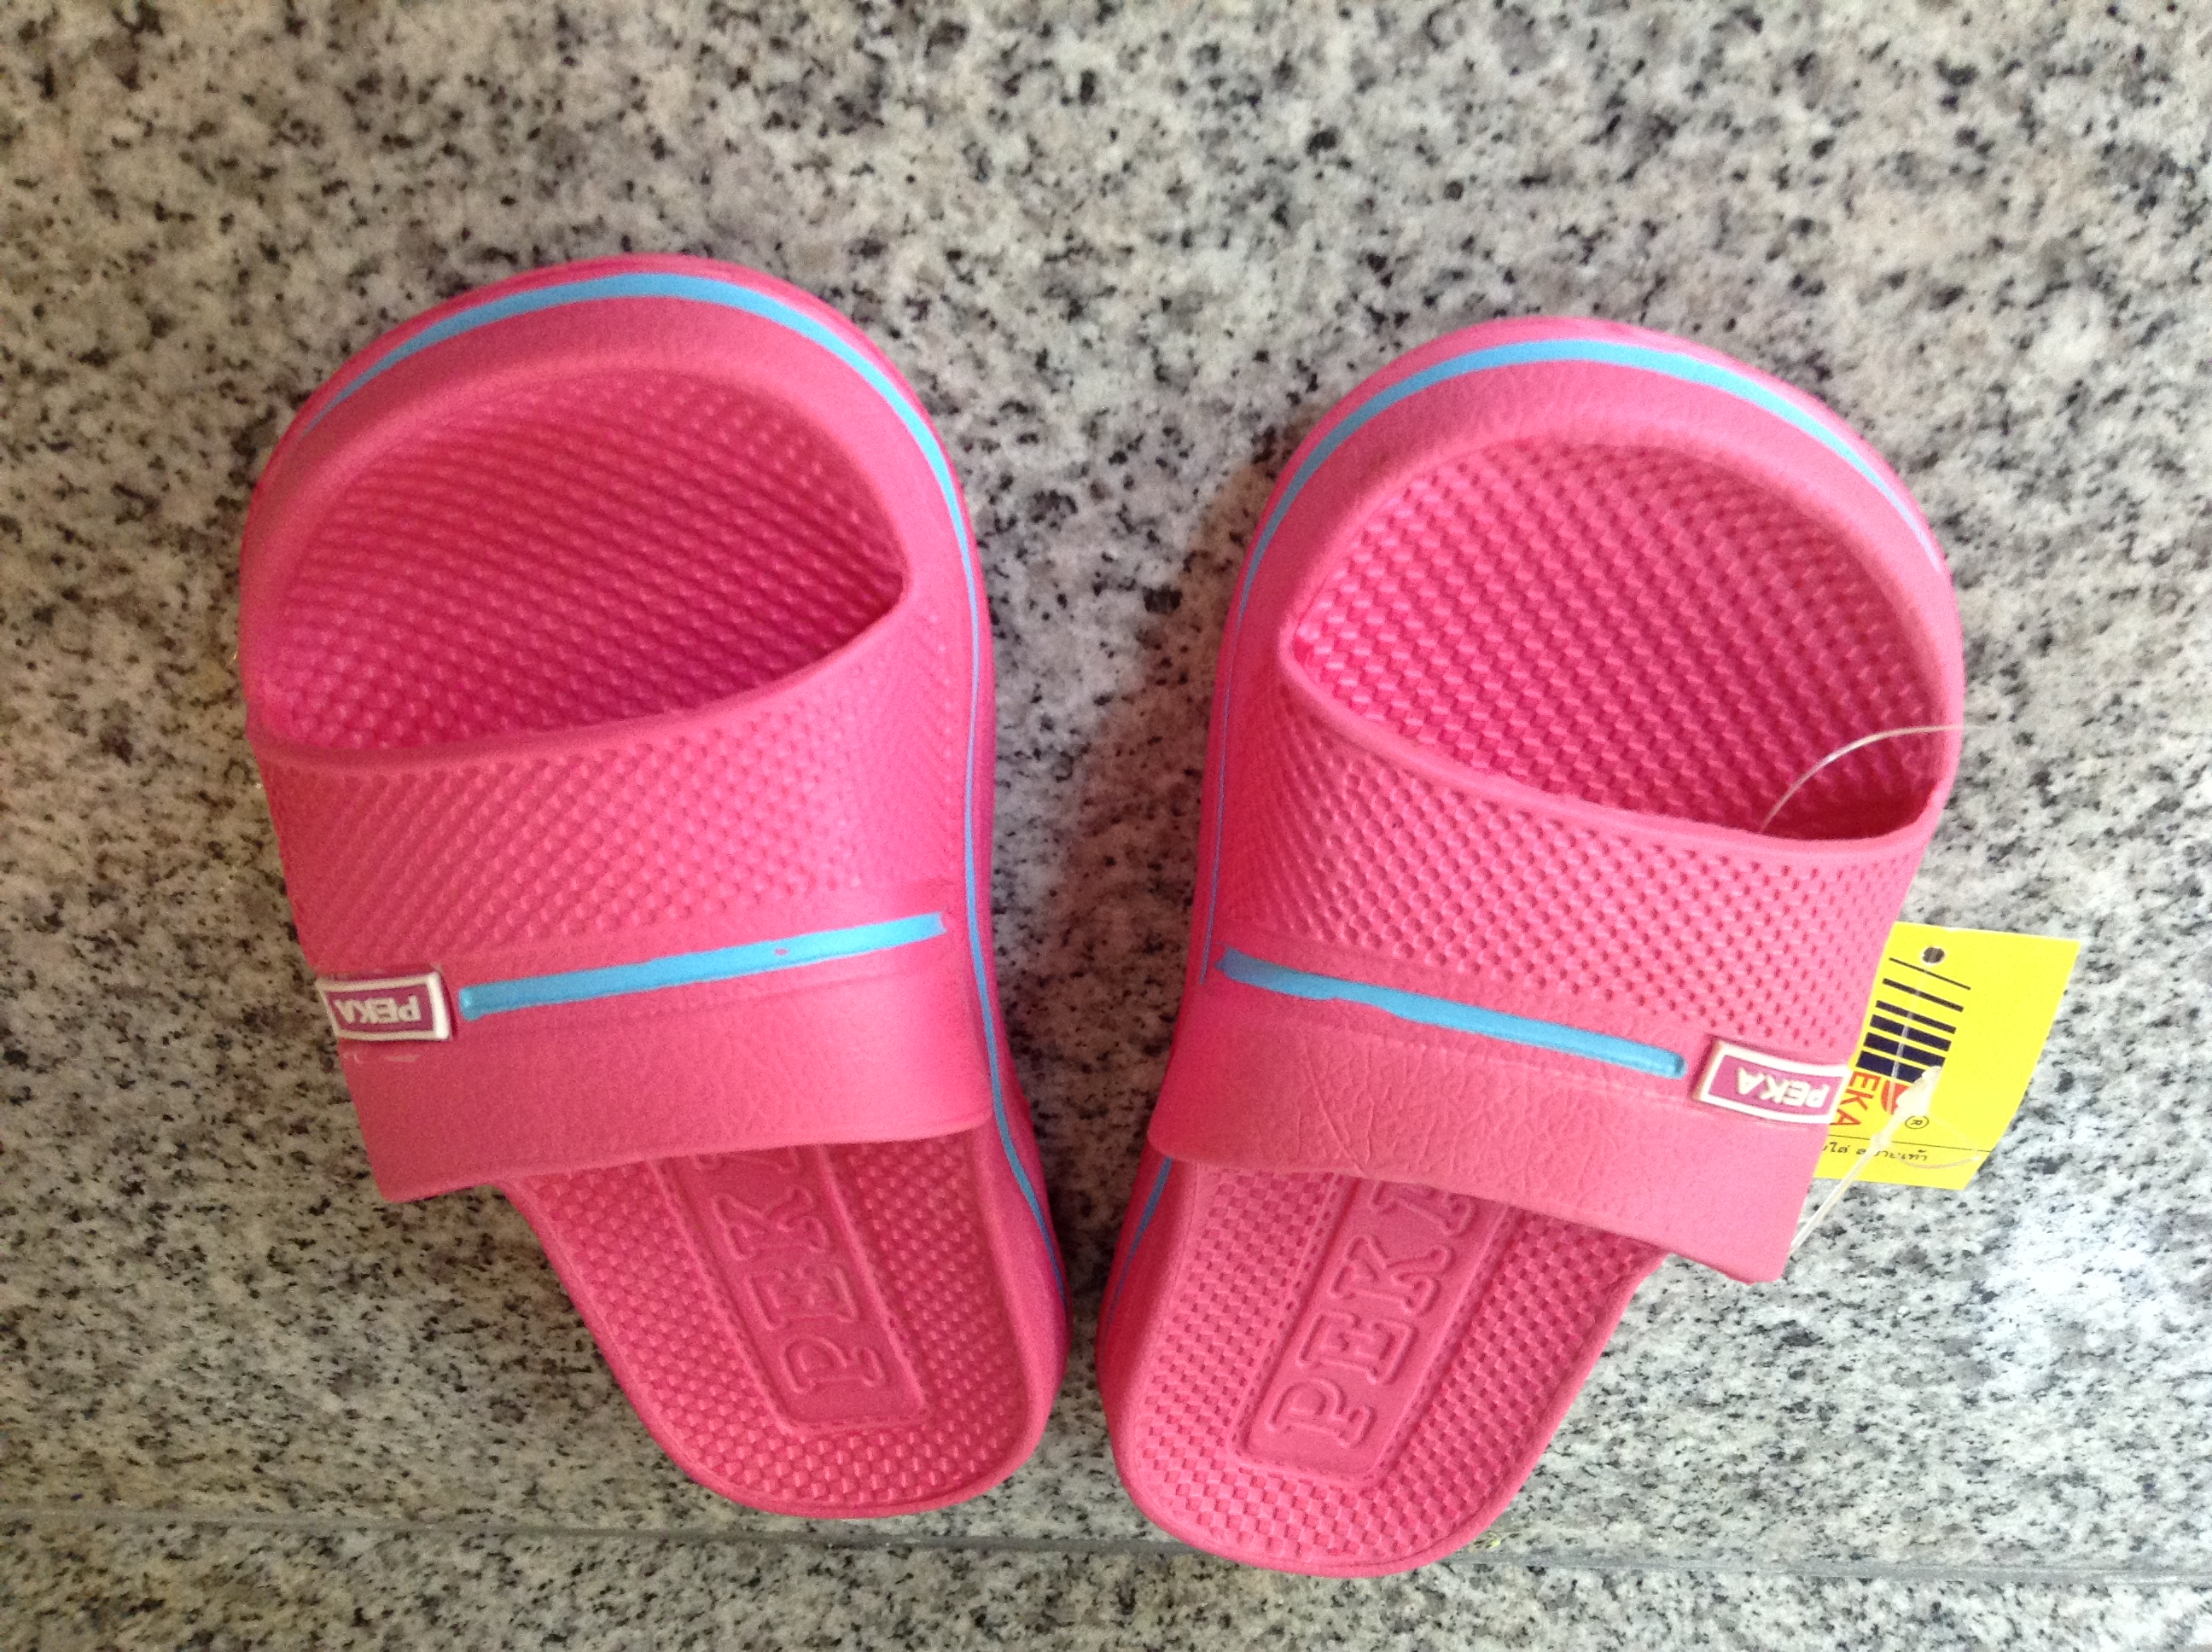 7c92d64e5254 PEKA Kids Flip Flops Sandals Pink Sandals Shoes